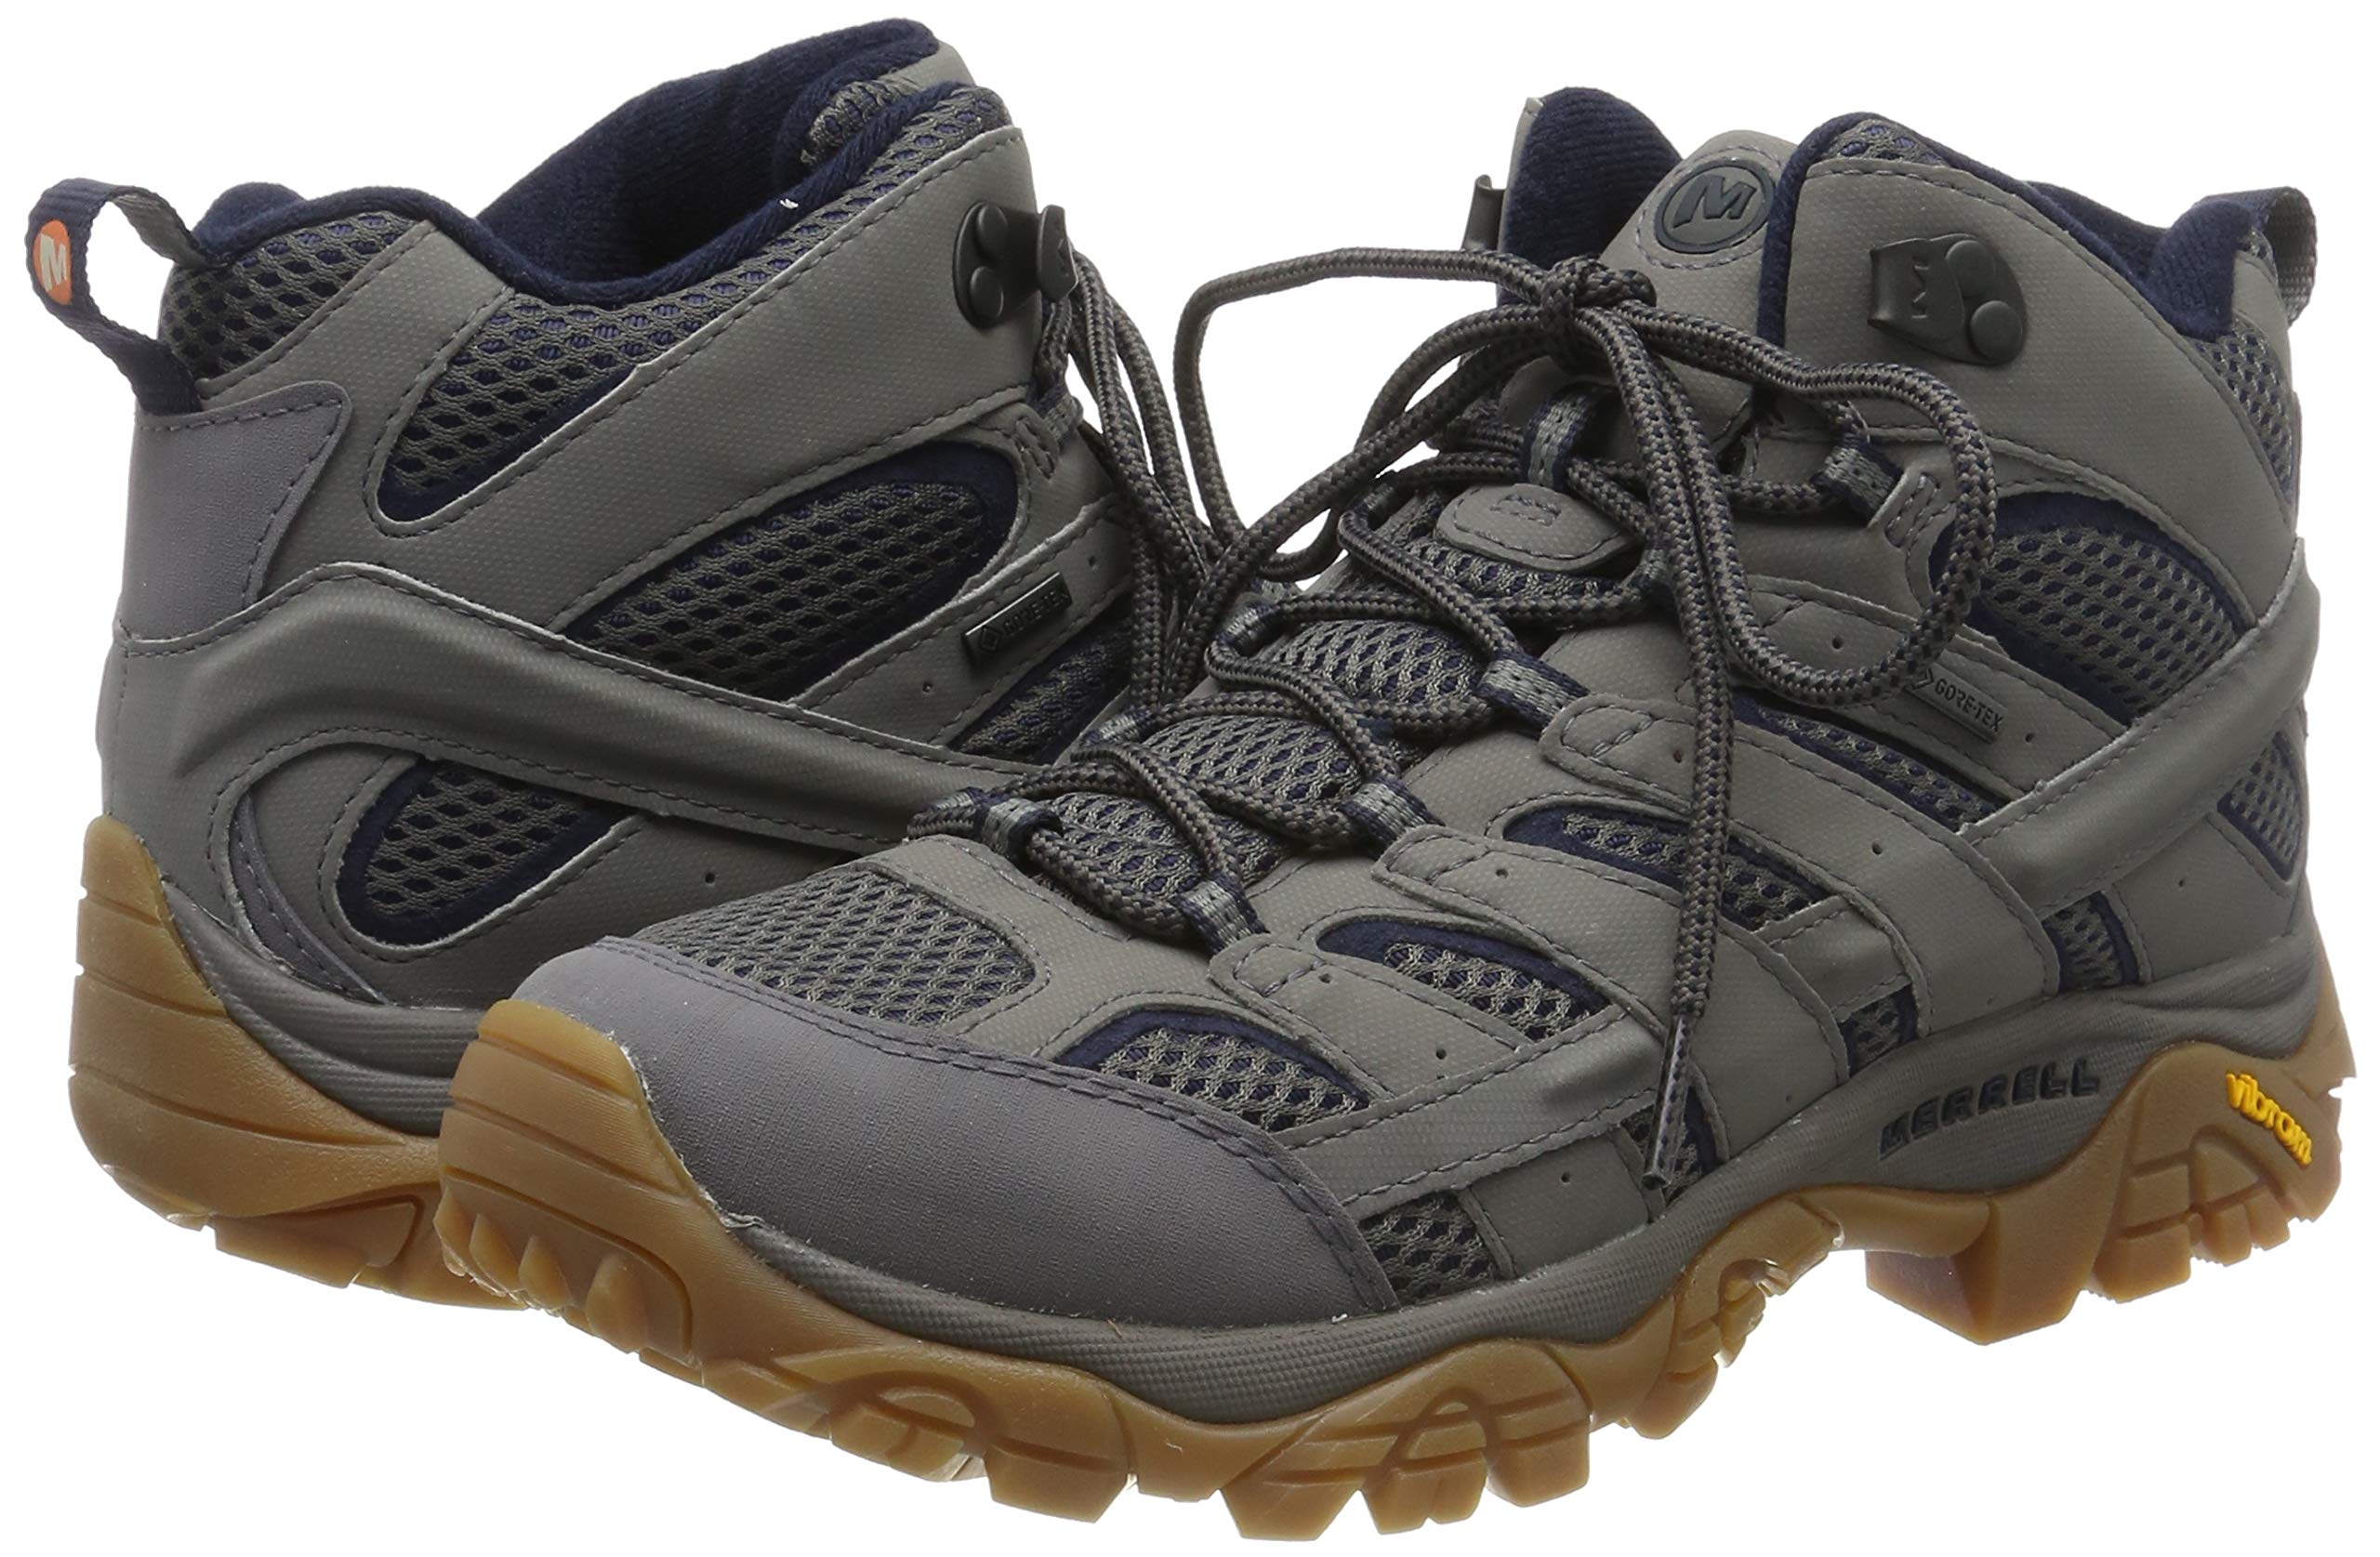 Merrell Men's Moab 2 Mid Gore-tex High Rise Hiking Boots 5